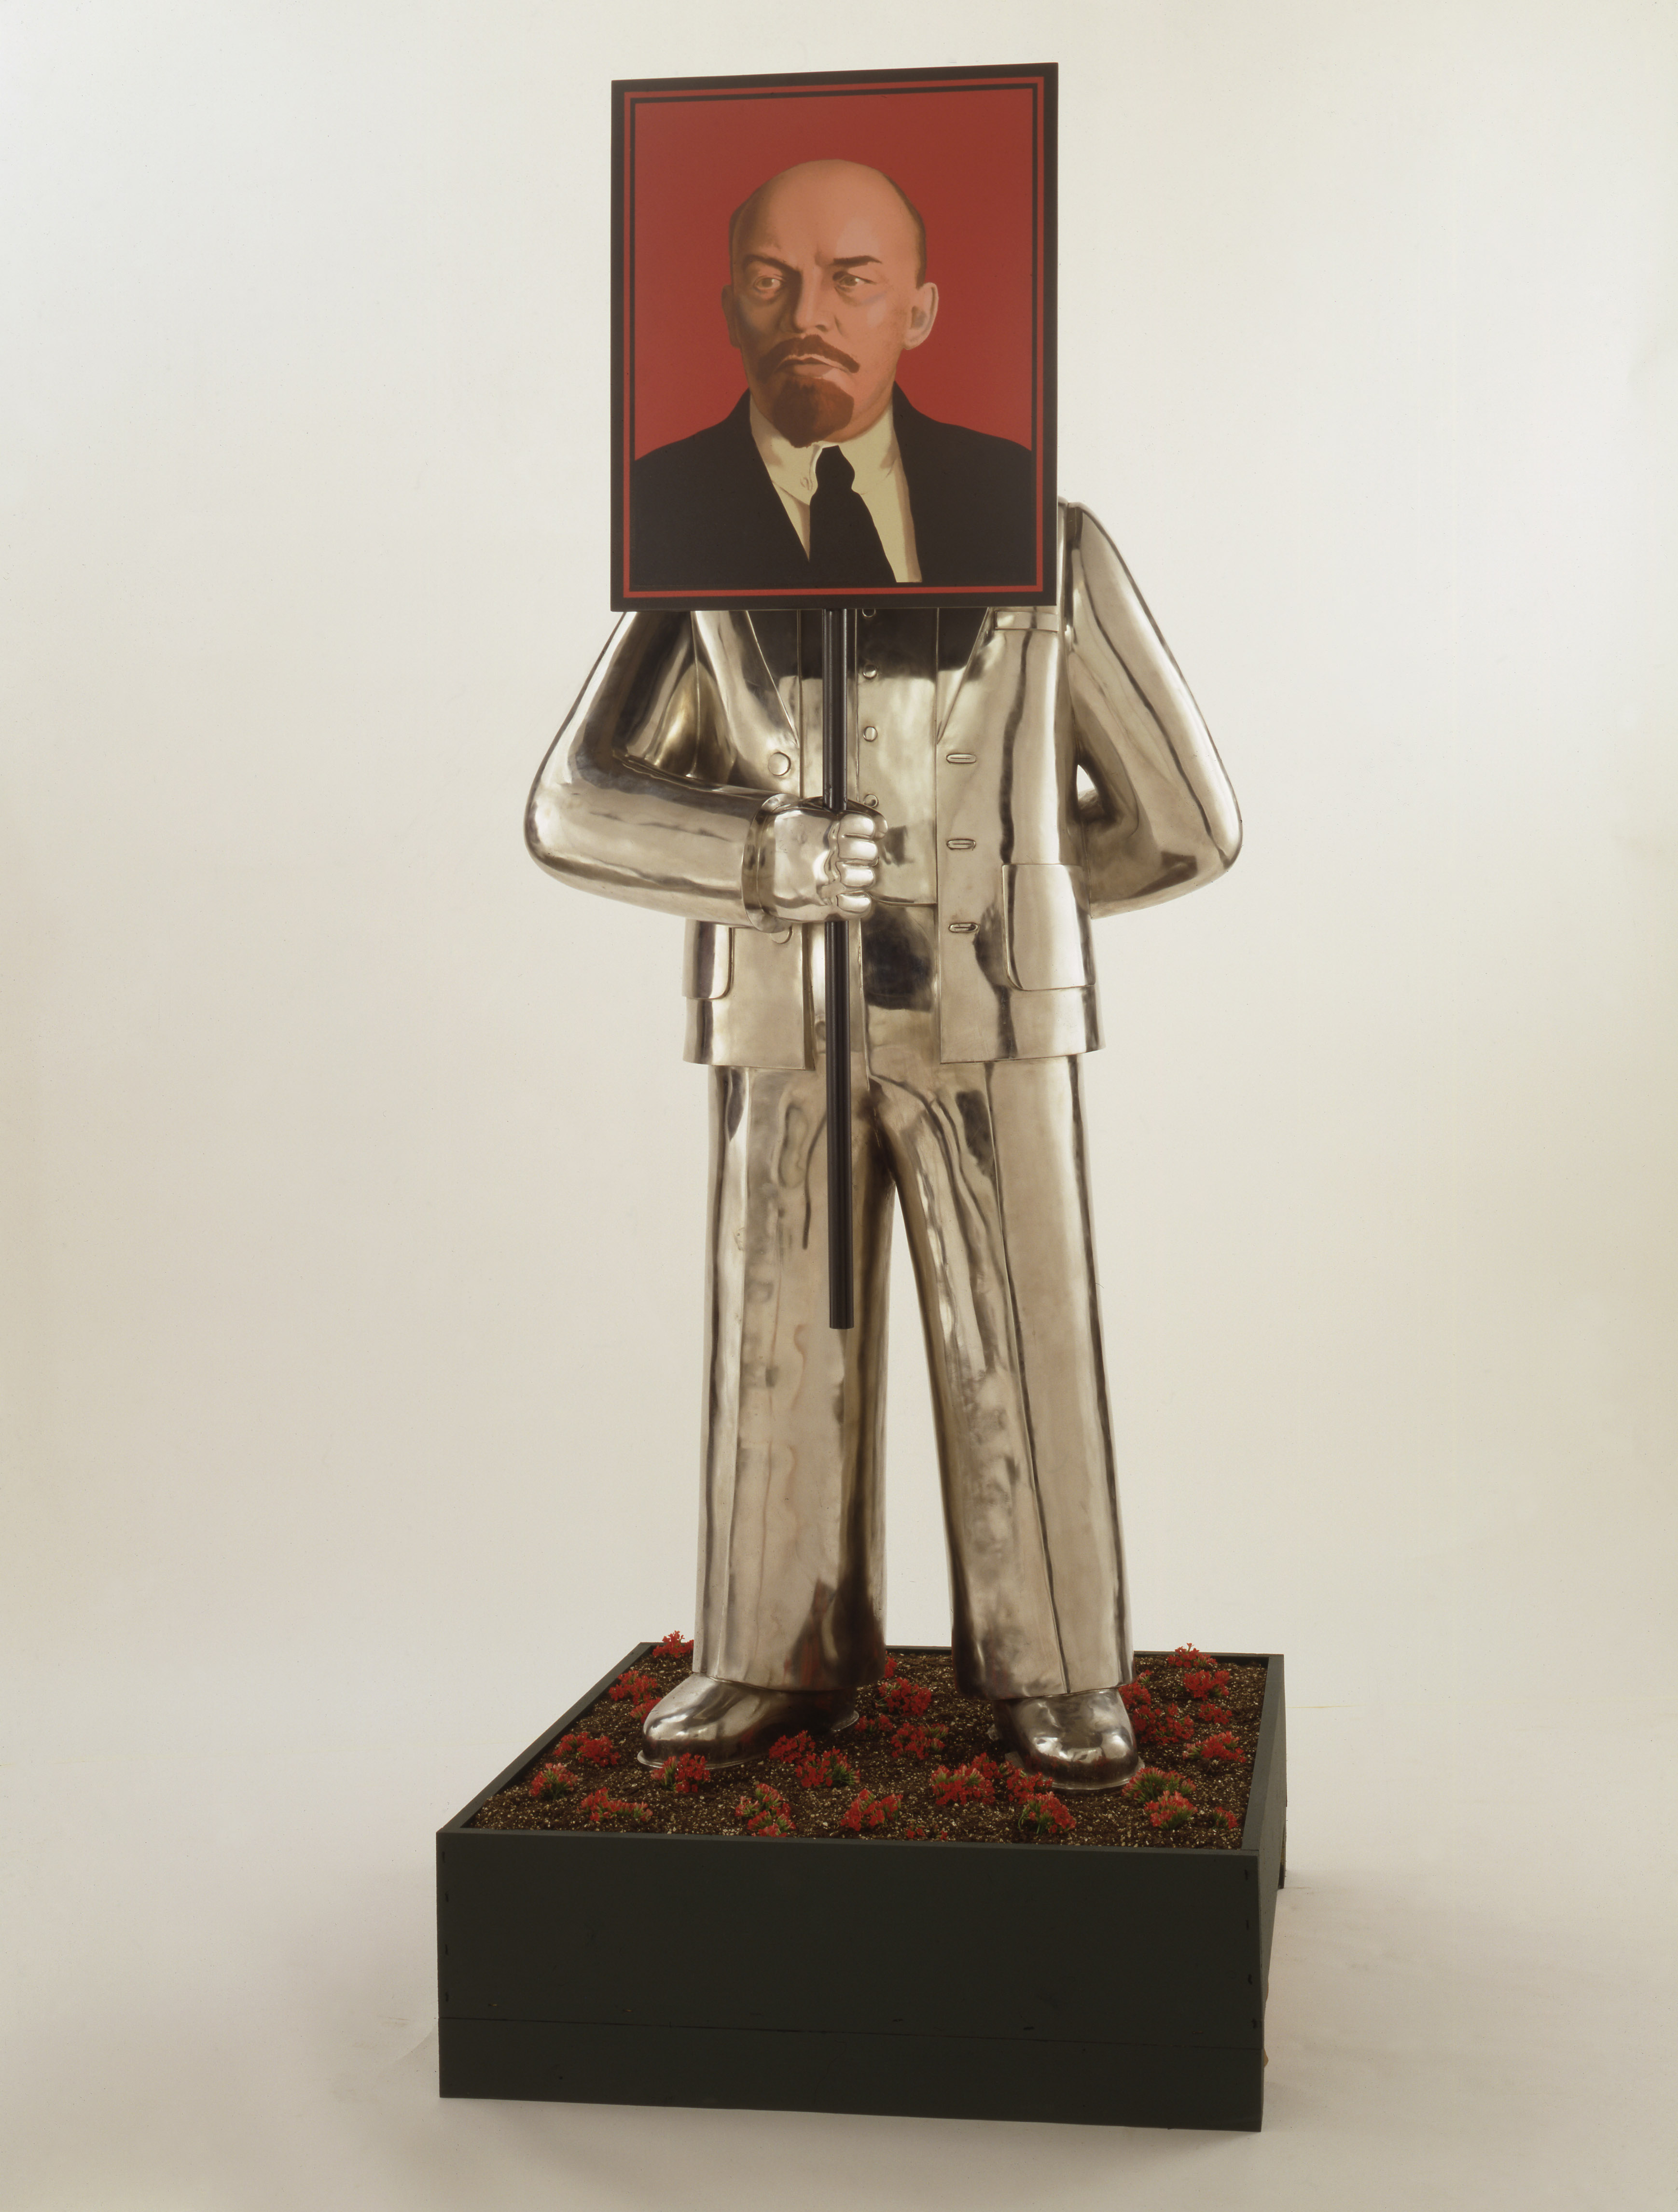 GRISHA BRUSKIN Man with Portrait of Lenin. (From the series Paradise Lost) 1990 Installation, stainless steel, aluminum, industrial enamel 200 x 86.4 x 68.5cm Image courtesy of the Sepherot Foundation, Liechtenstein